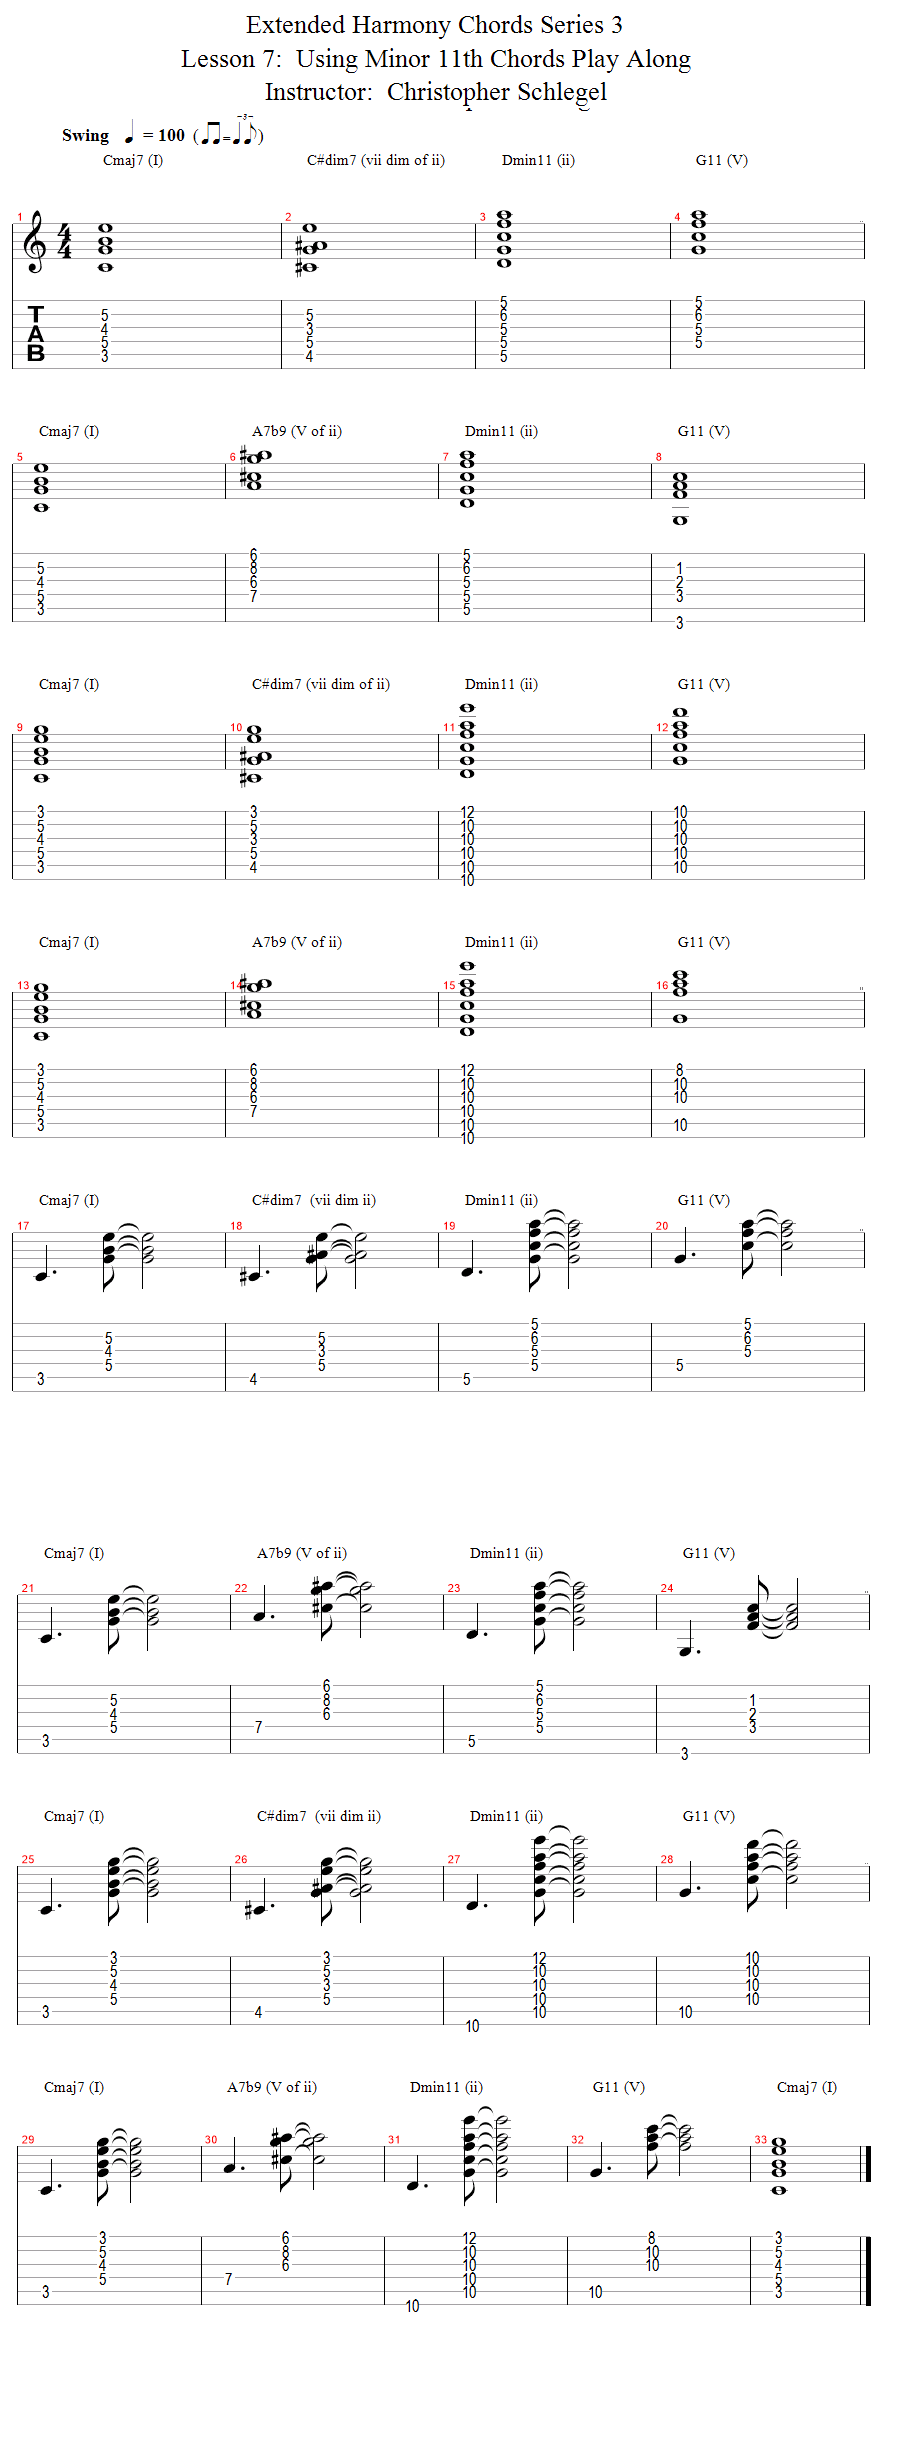 Guitar Lessons E String Rooted Progression With 11th Chords